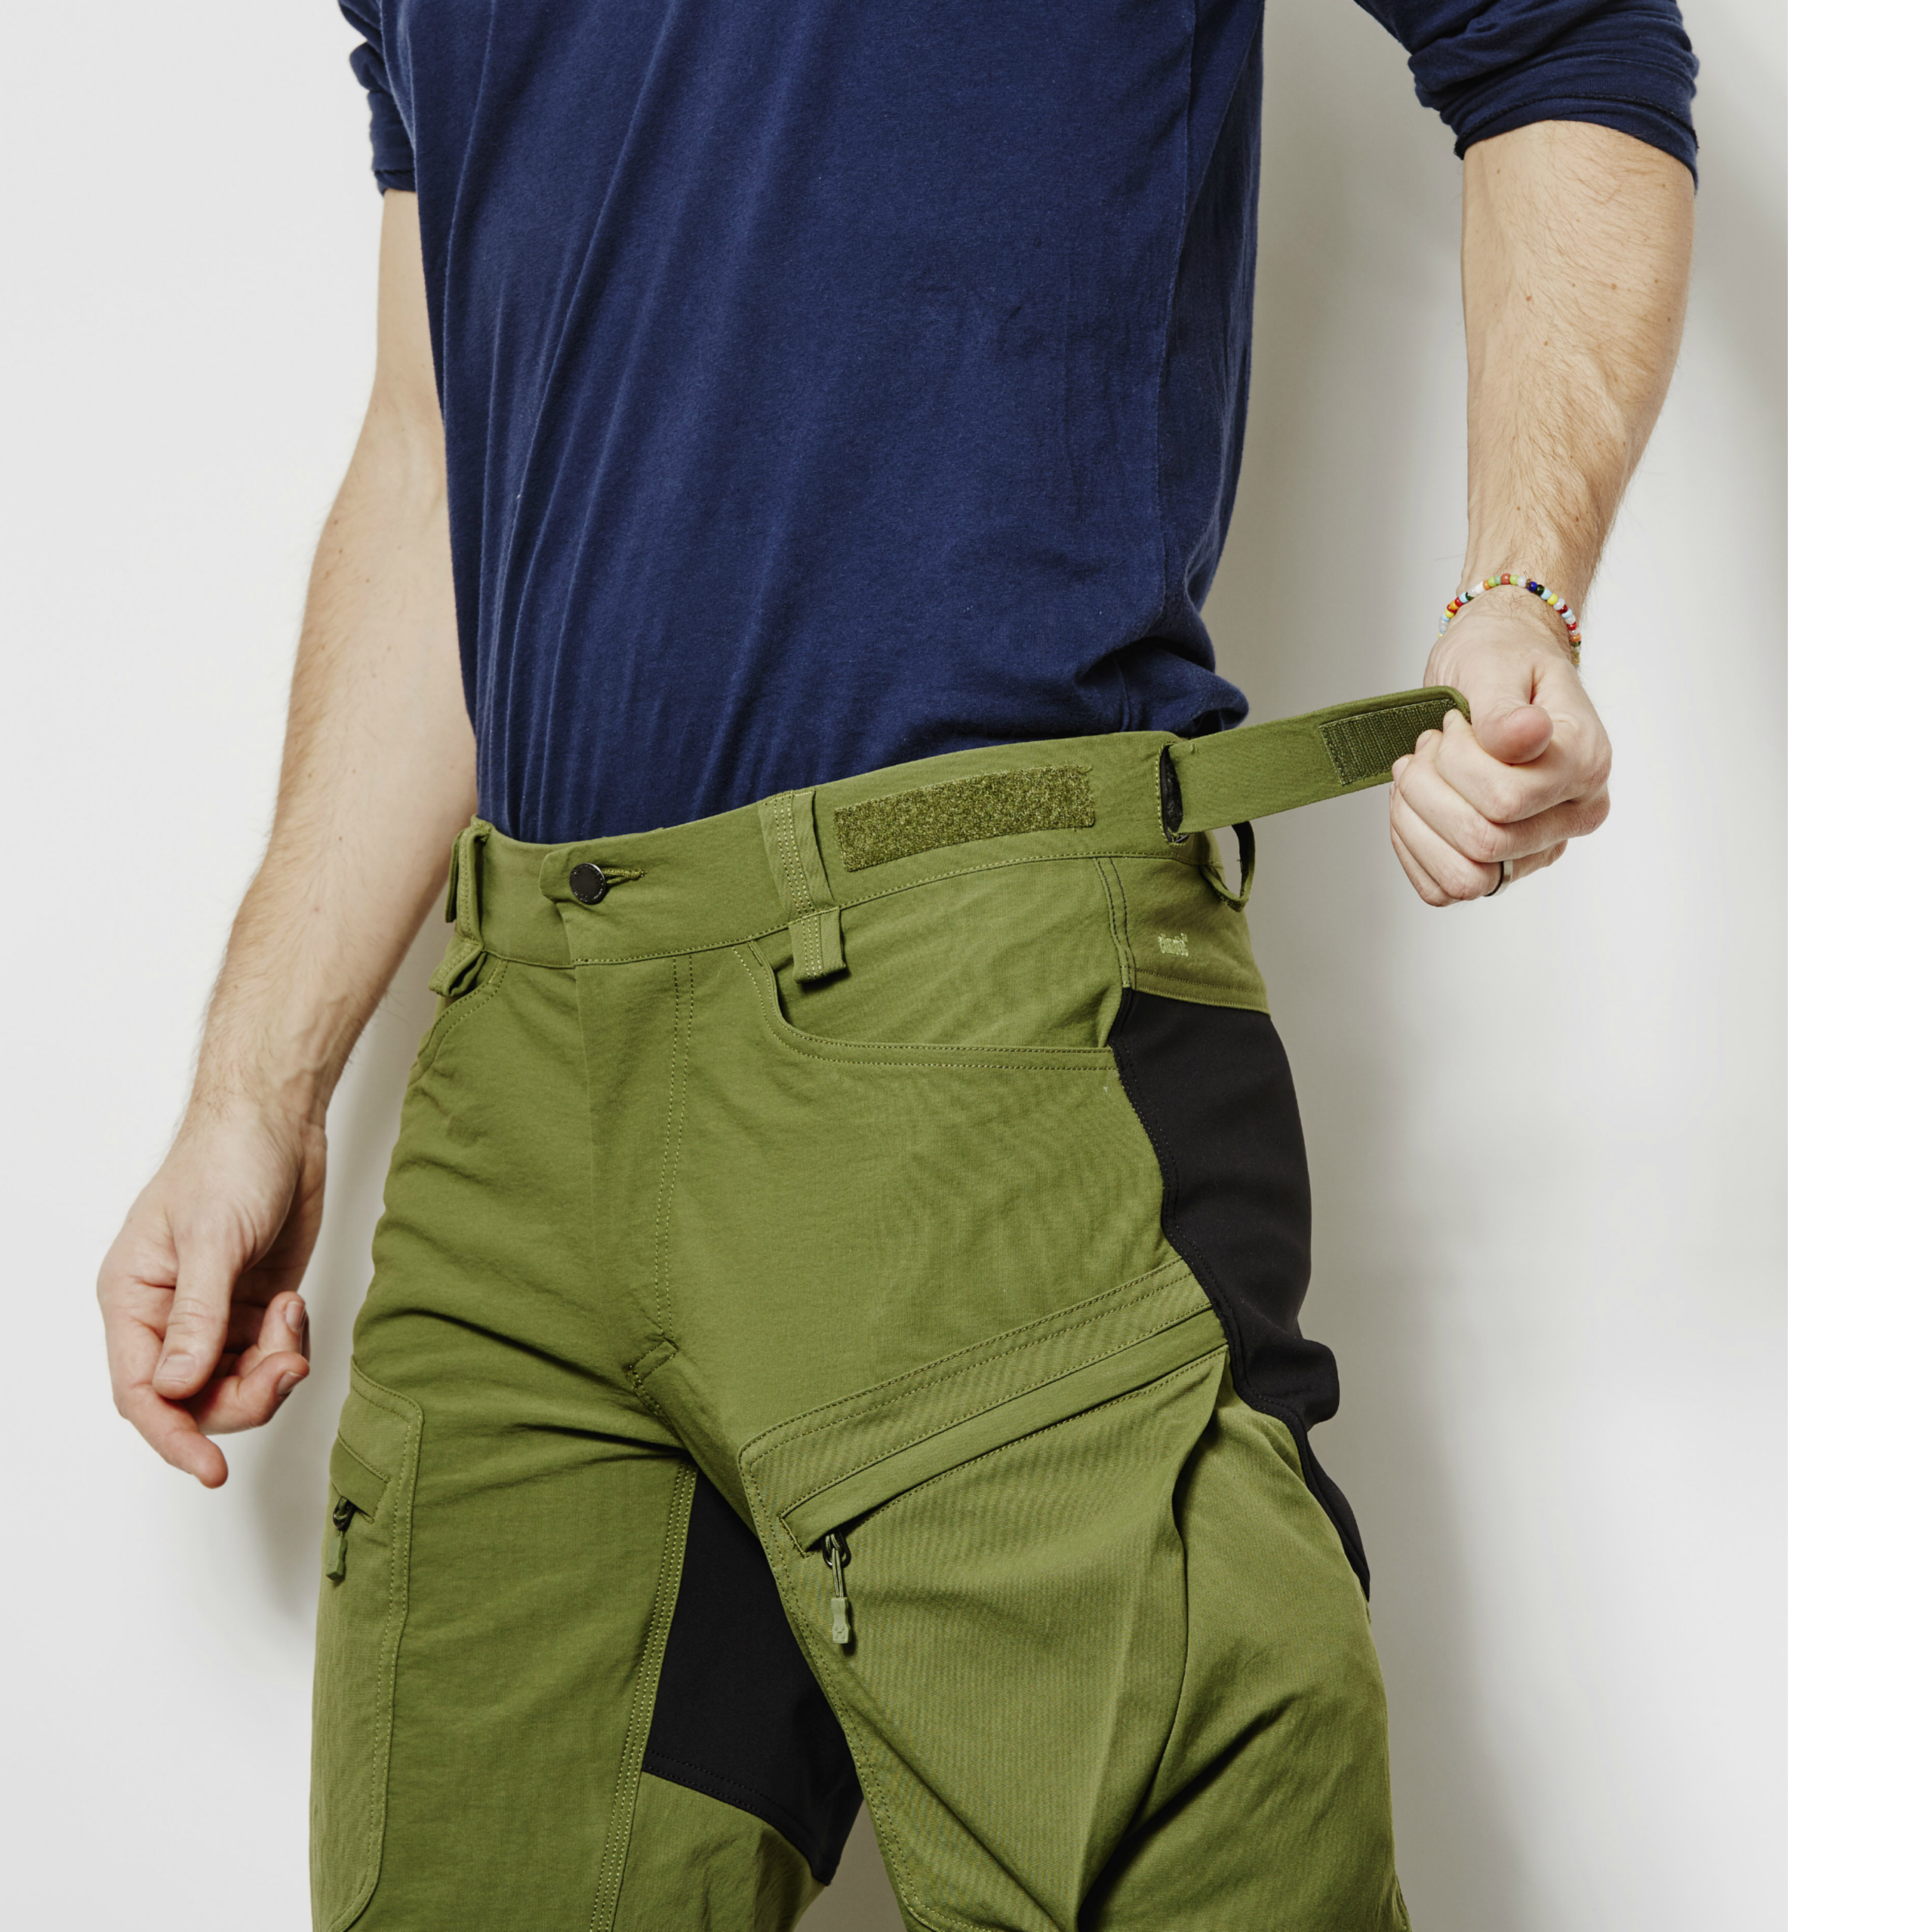 Rugged Ii Mountain Pant Men Haglofs Pants Pattern Mens Pants Pants